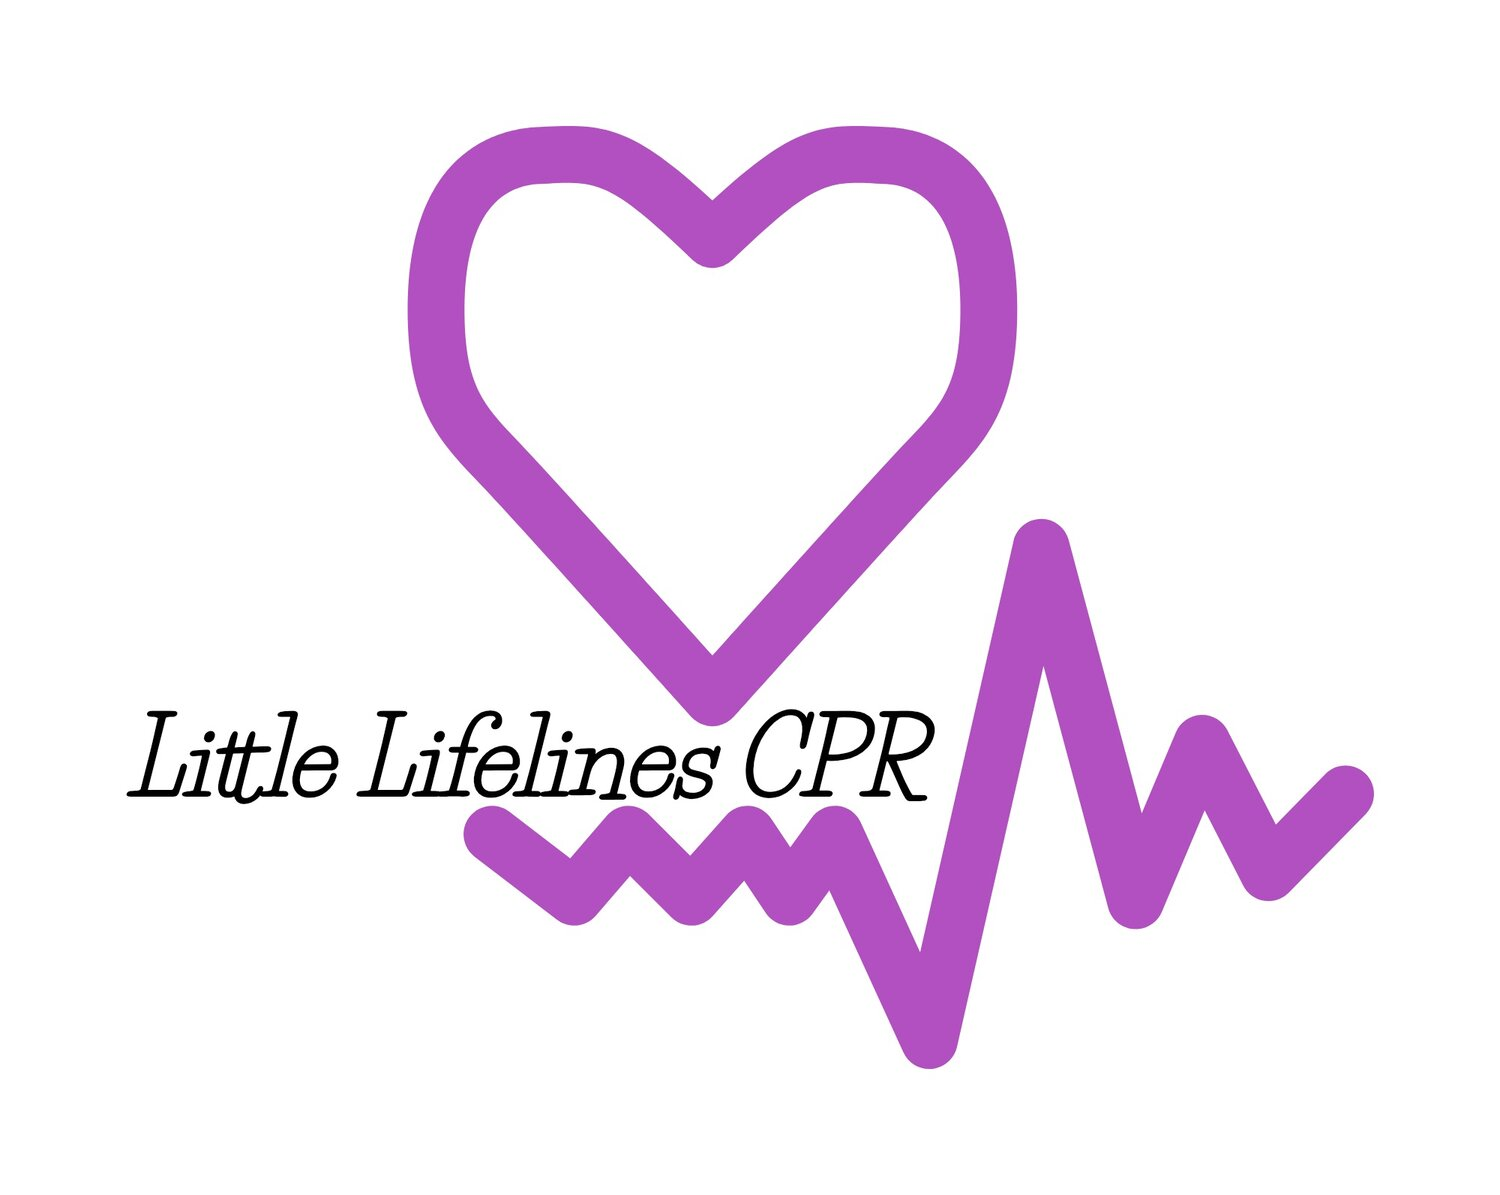 Little Lifelines CPR